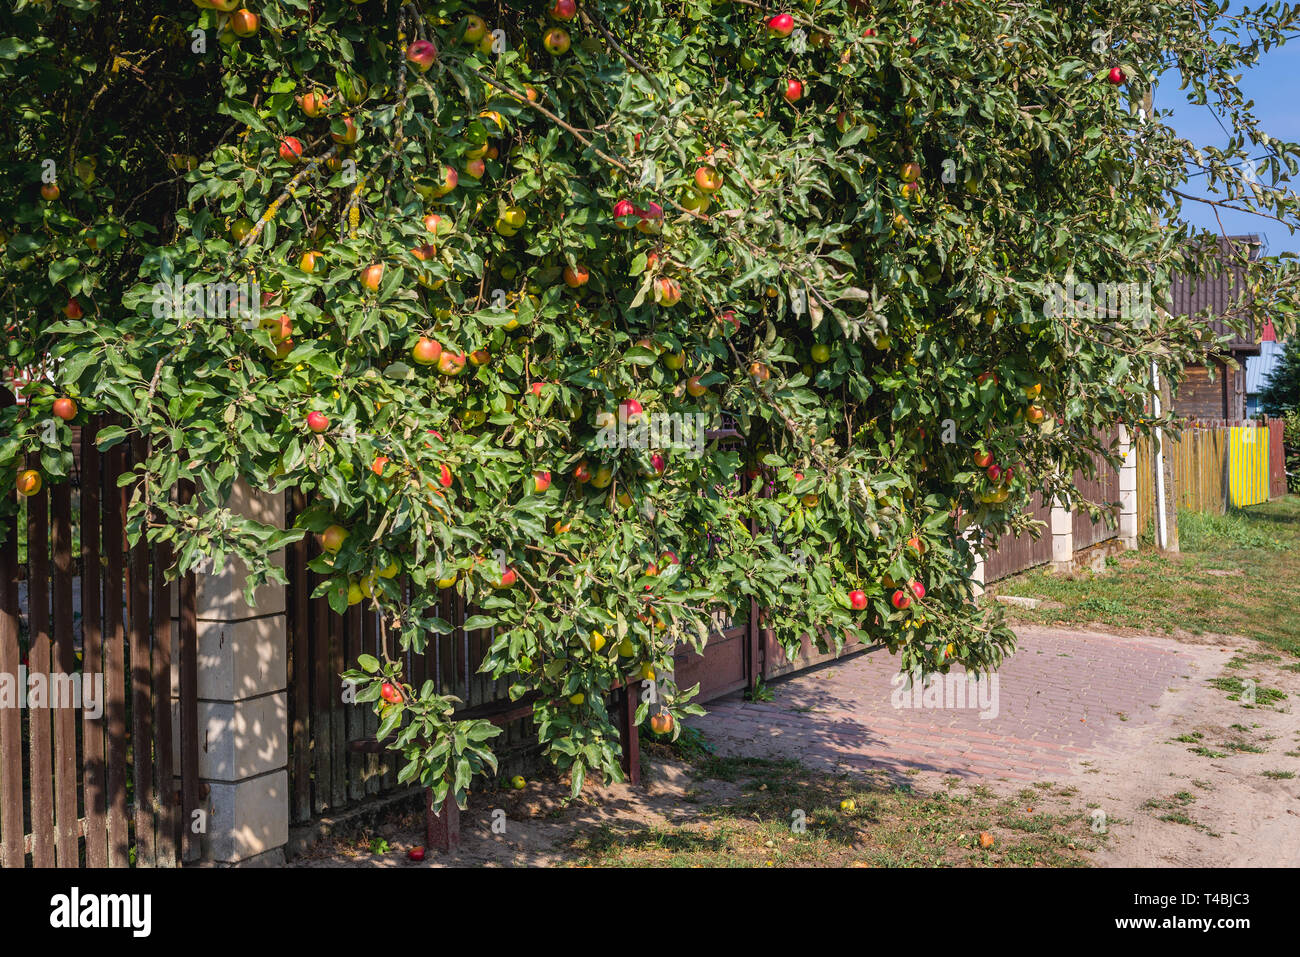 Apple tree in Soce village on so called The Land of Open Shutters trail, famous for traditional architecture in Podlaskie Voivodeship, Poland - Stock Image